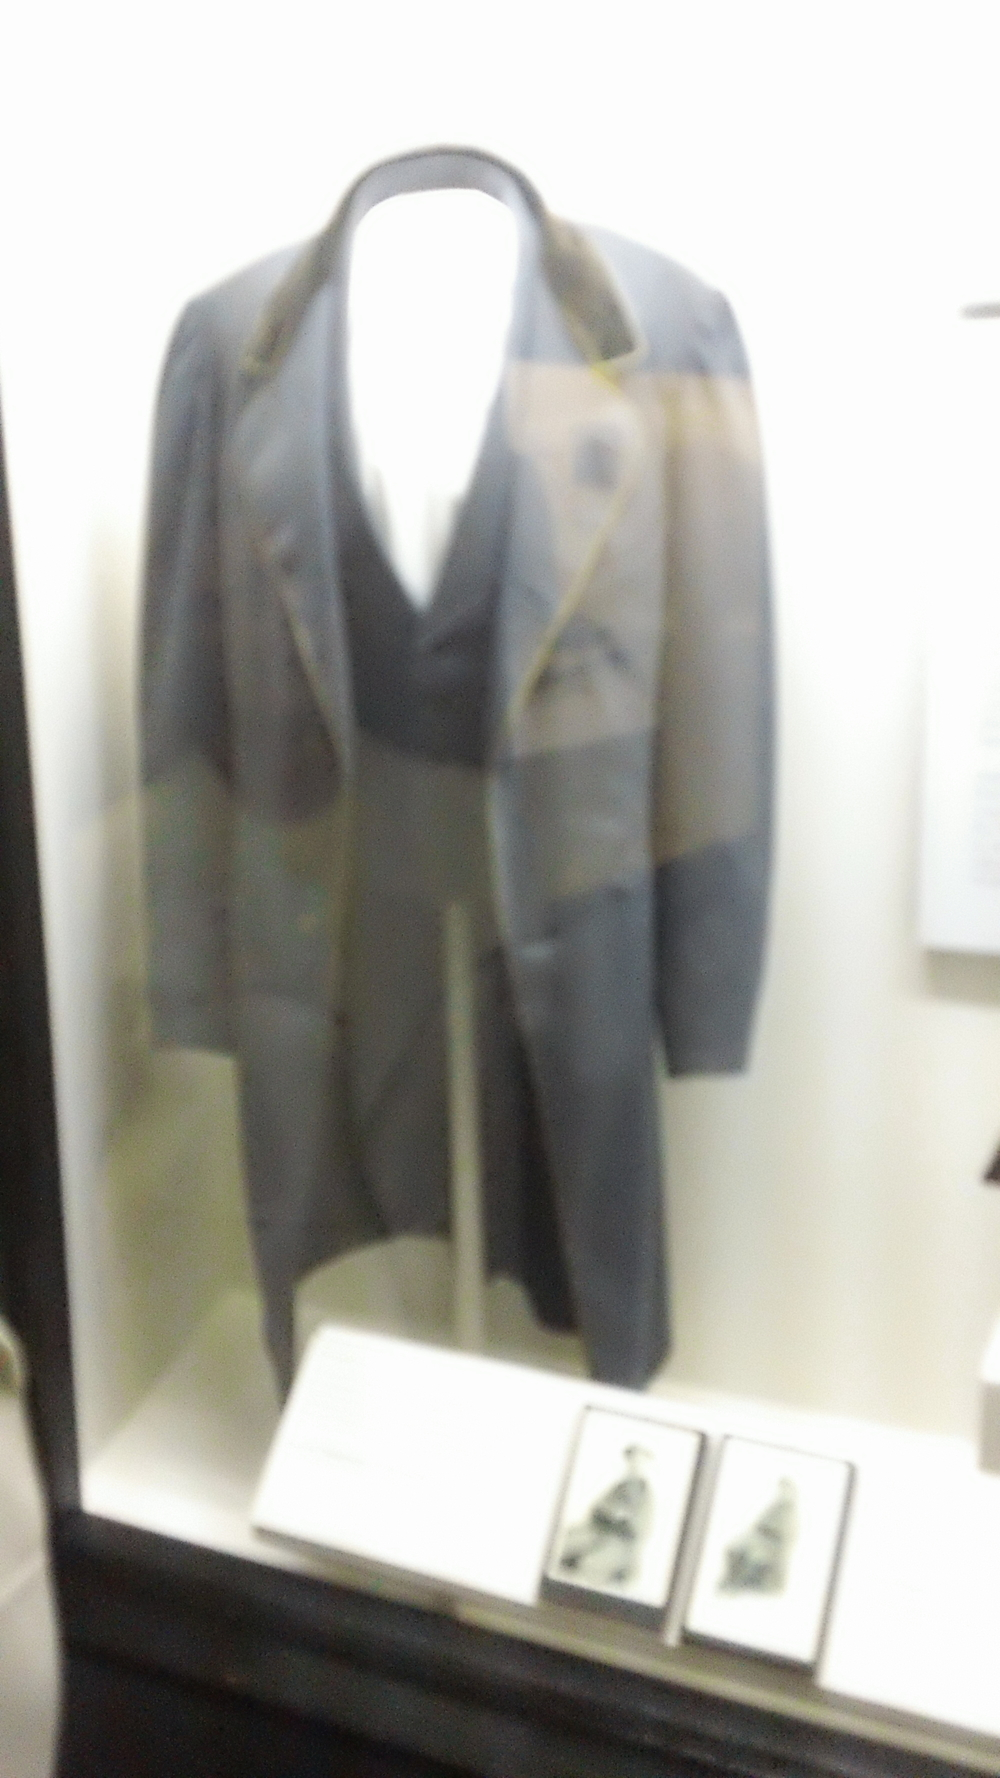 The coat Jefferson Davis was wearing when he was ultimately captured by Federal troops.